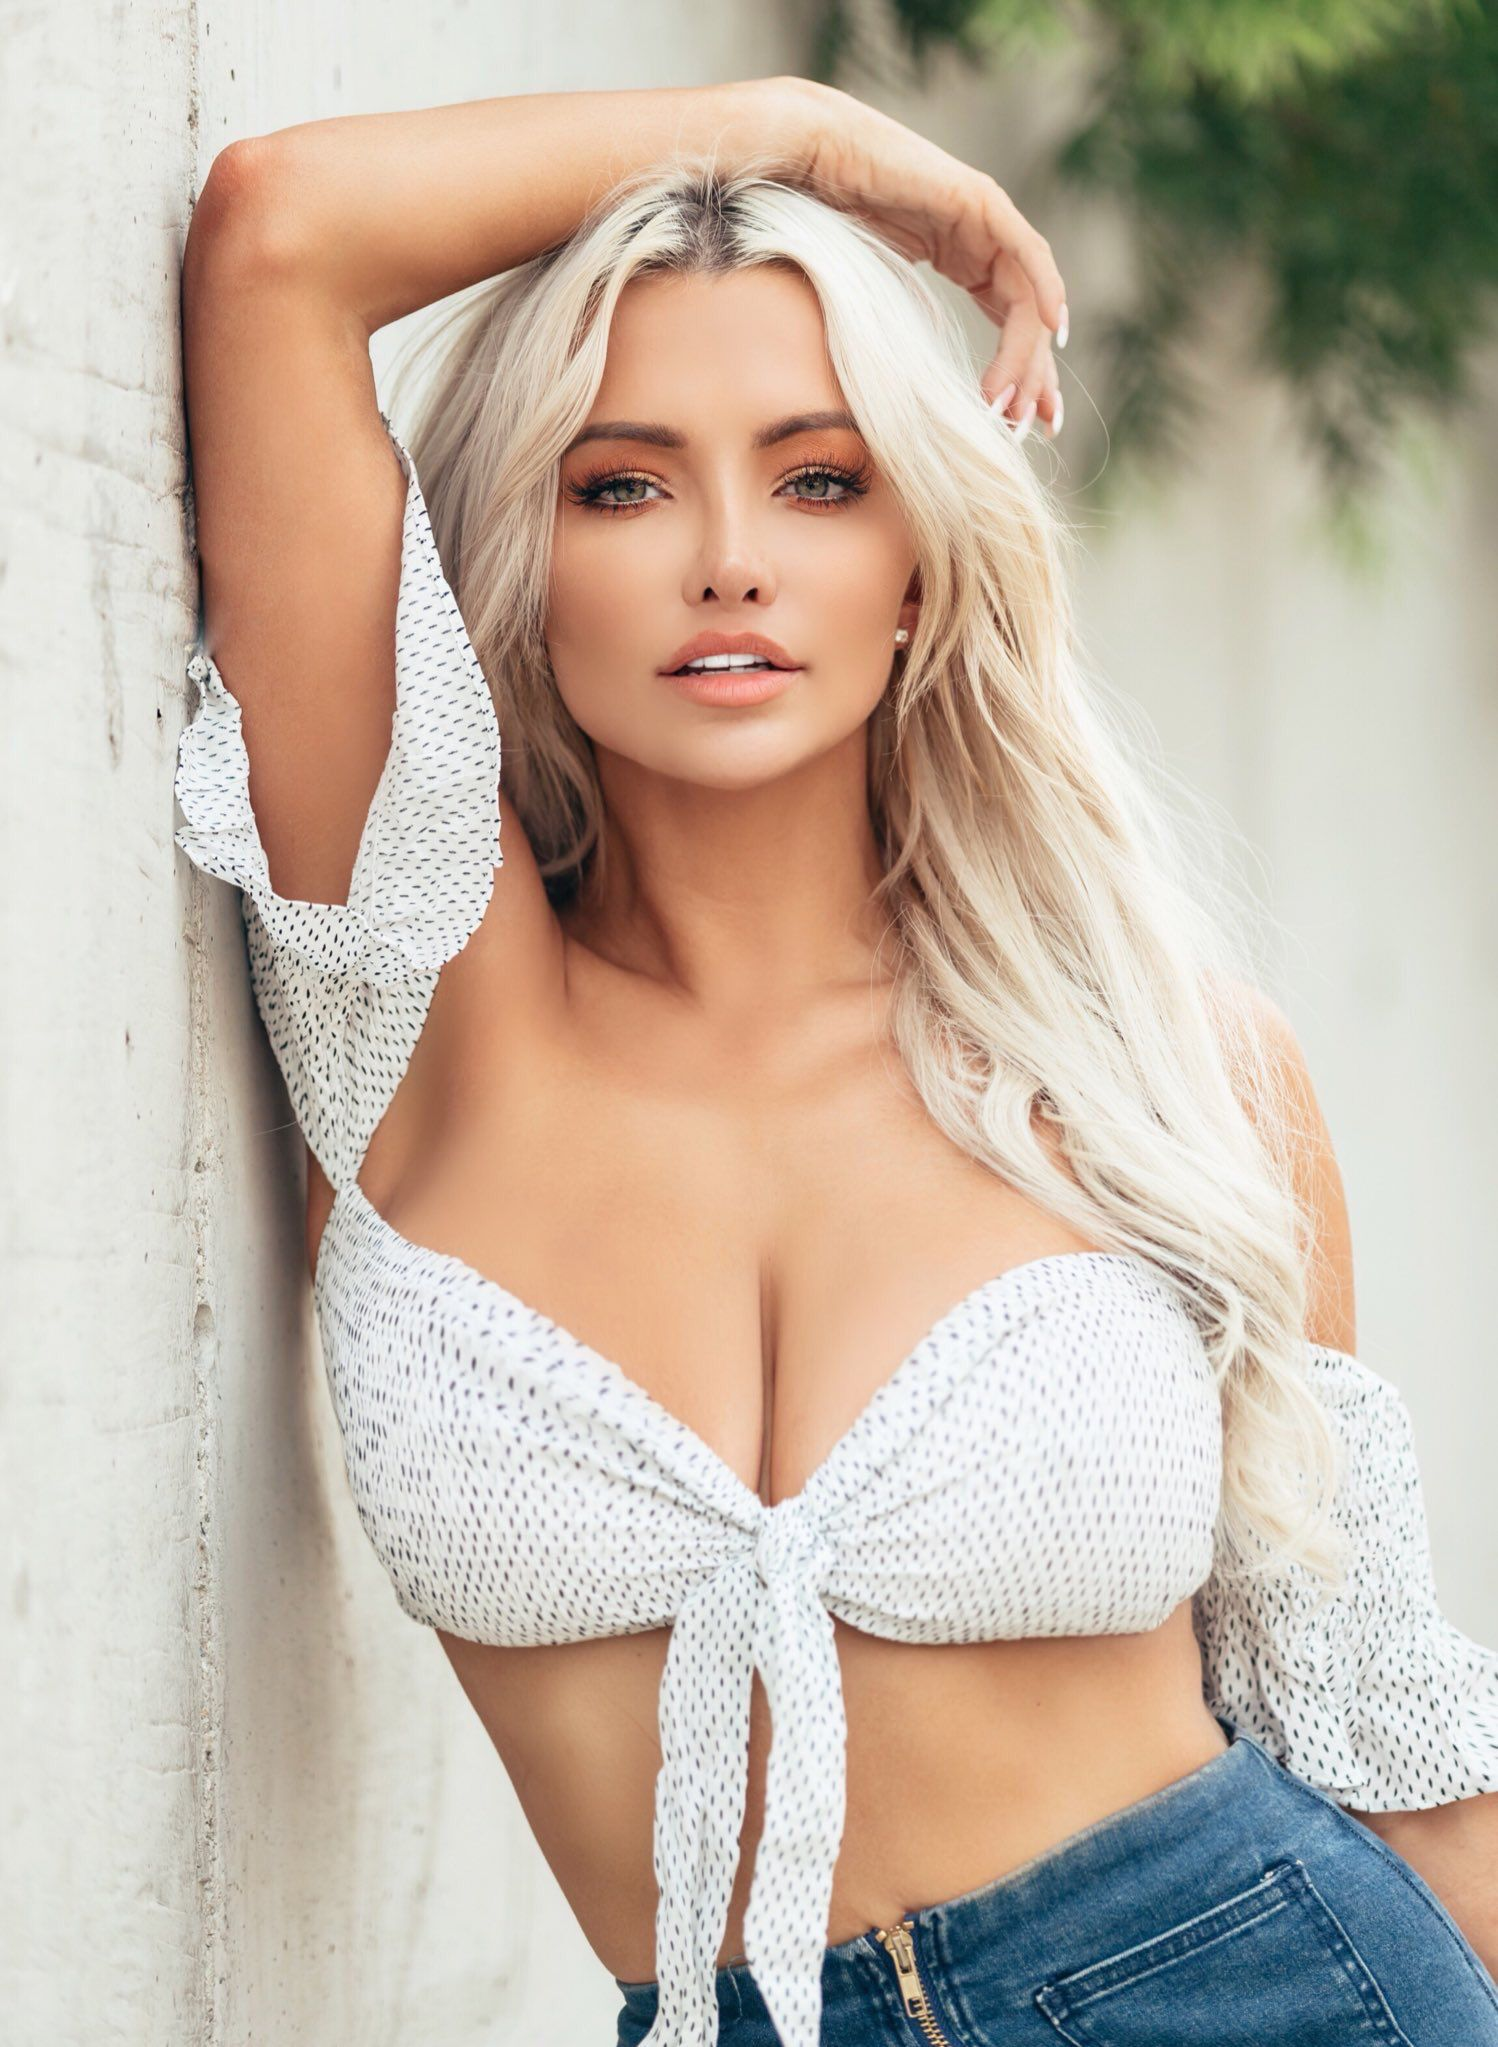 pictures Lindsey Pelas Sexy - 20 Photos Gifs Video